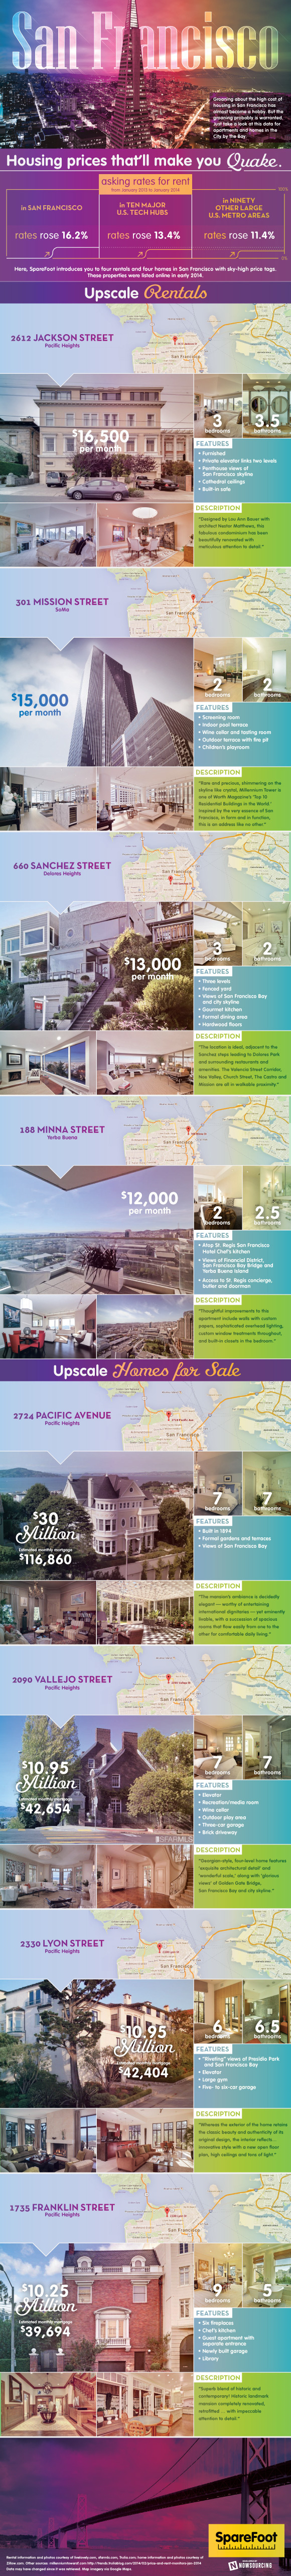 Expensive homes and apartments in San Francisco #an #rental #prices #real #fransisco #estate #high